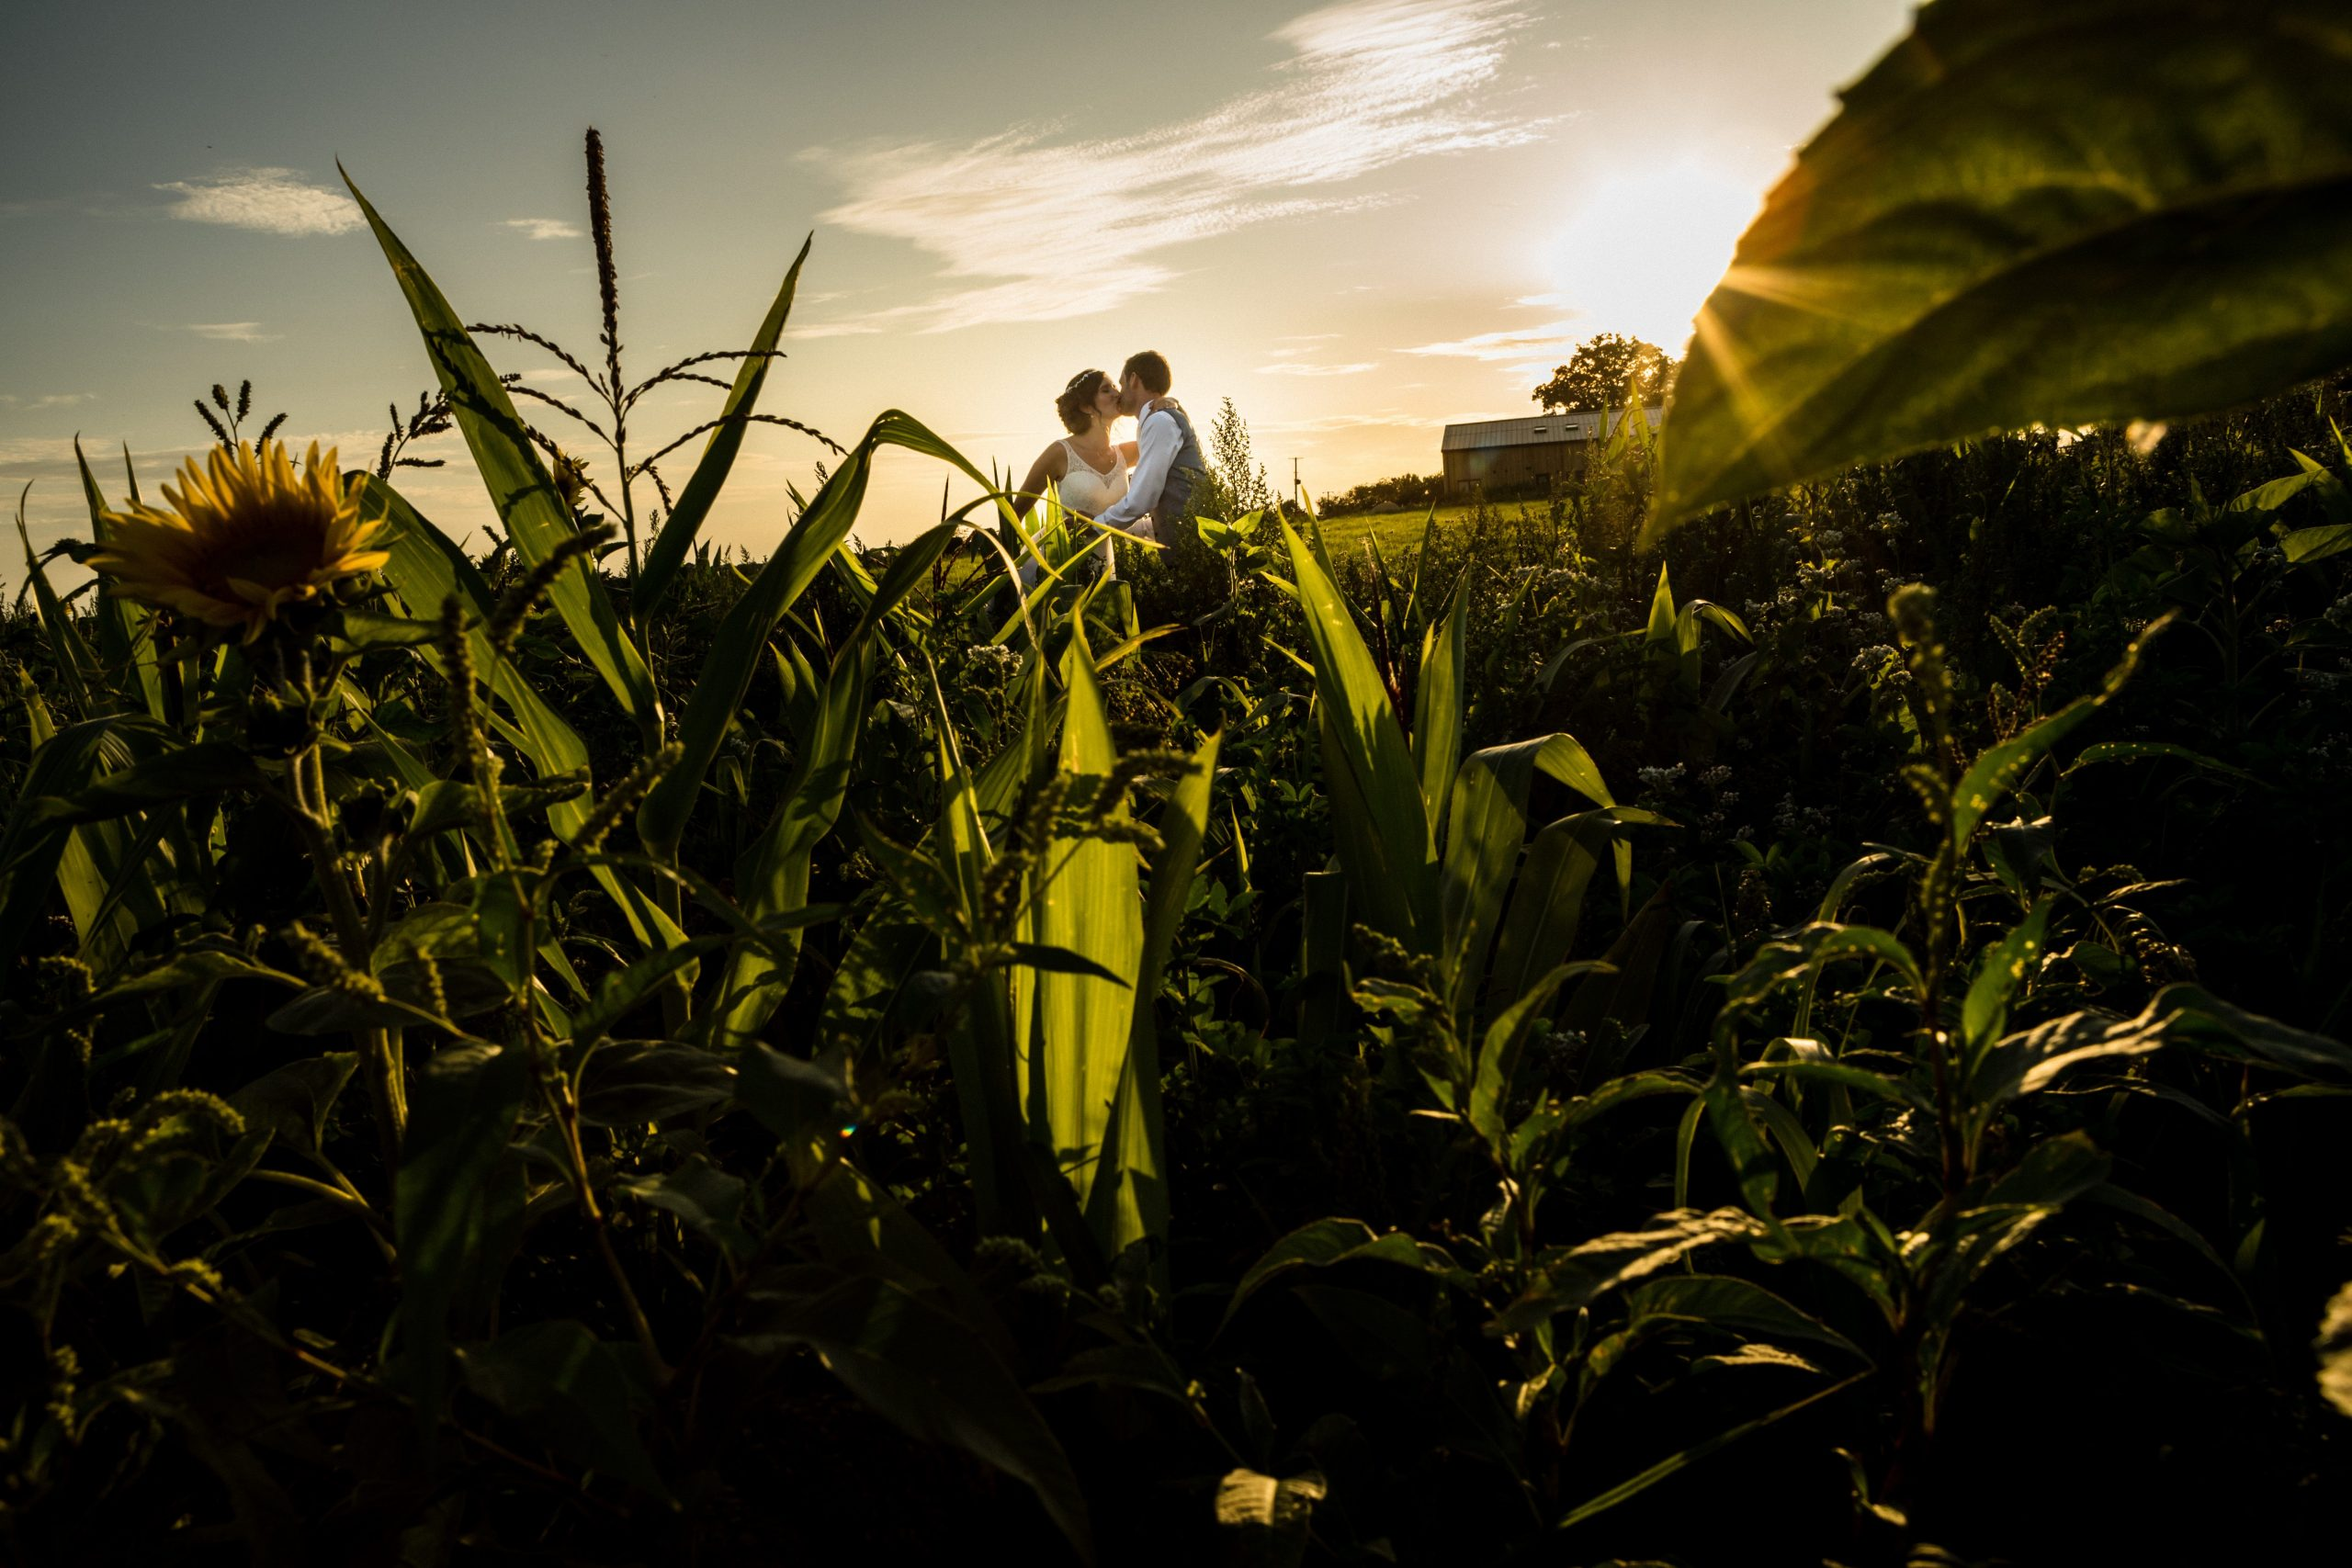 Winkworth farm couple in fields wedding day